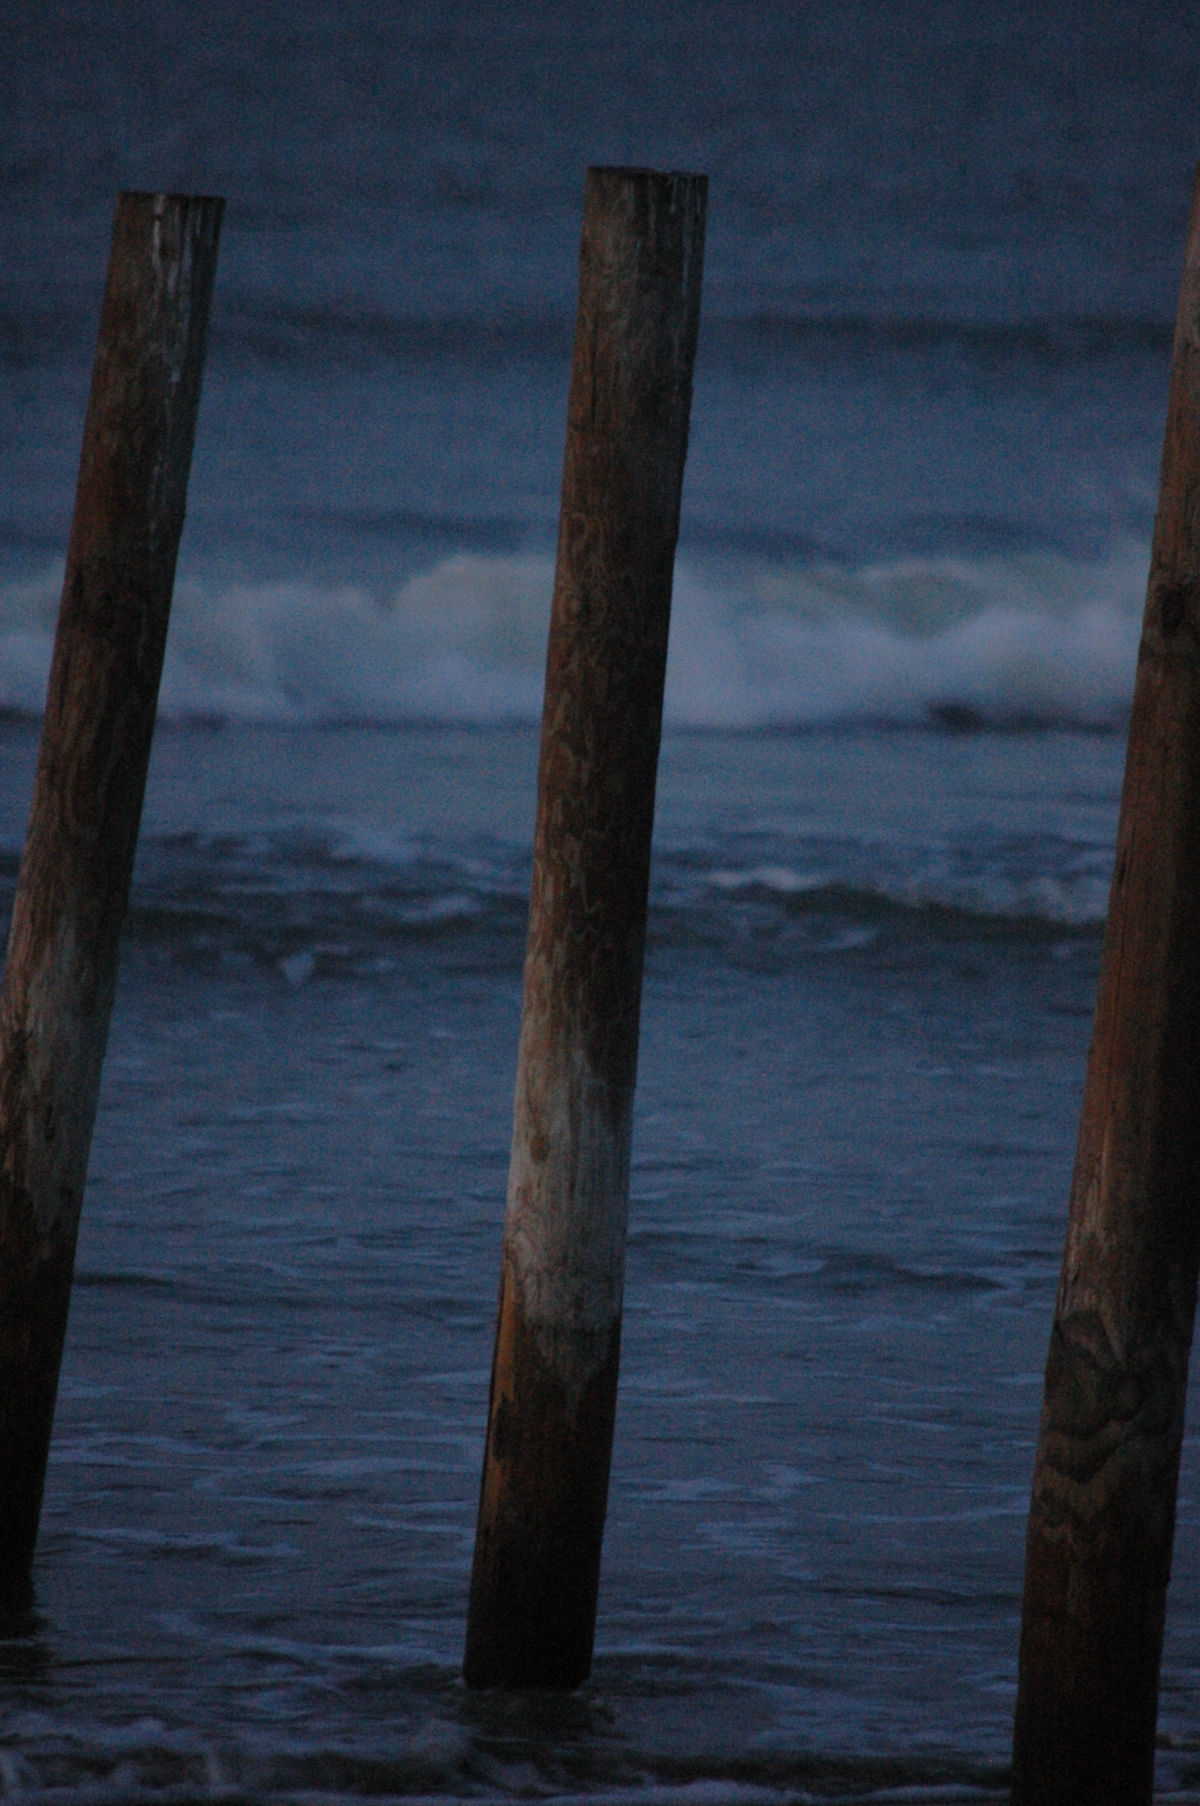 Posts on Jamaica Beach at sunrise - Galveston, TX